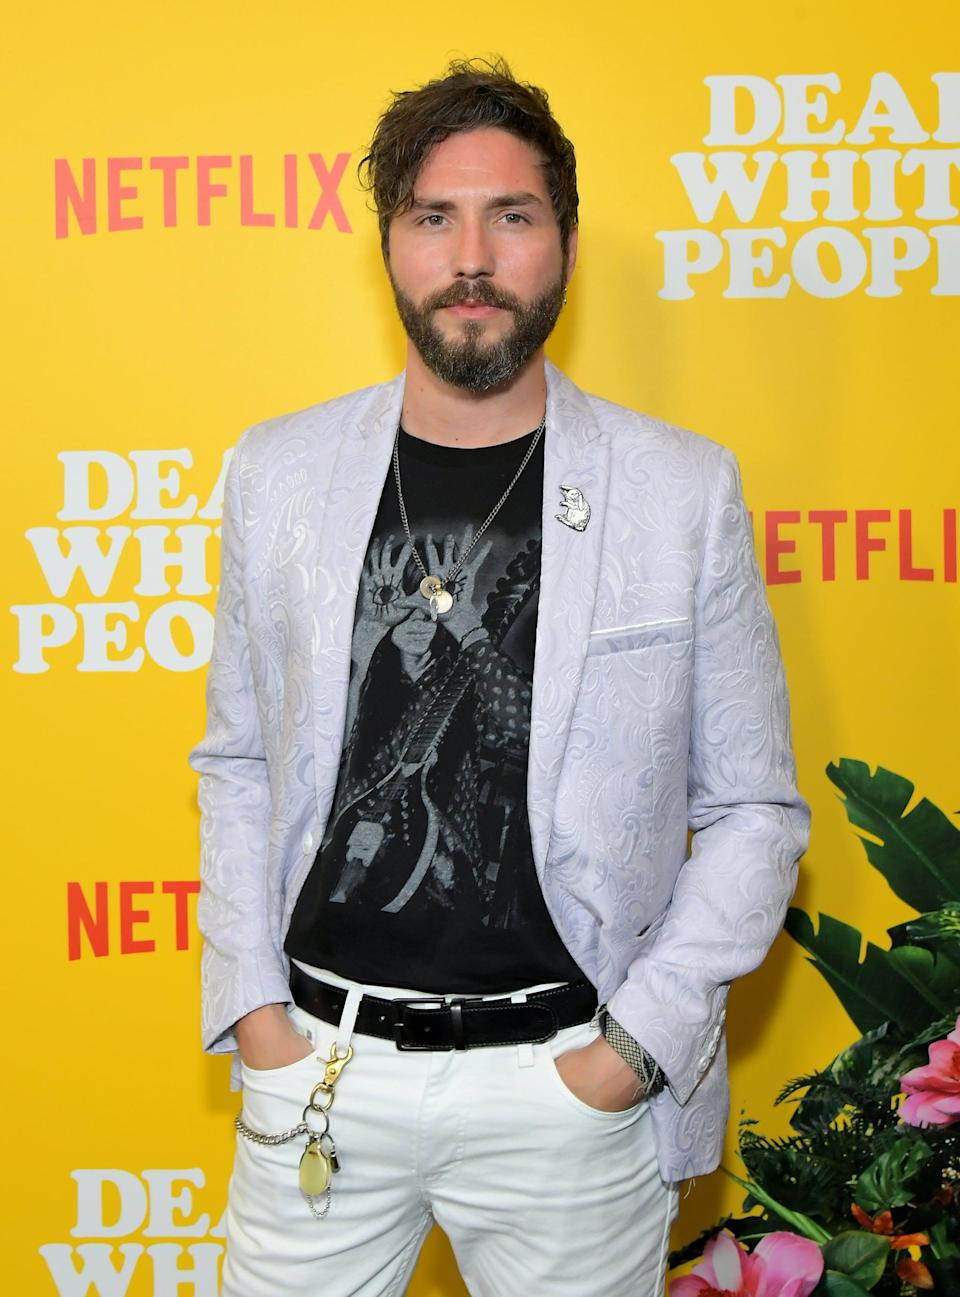 <p>Amedori has played Gabe since 2017, although he's also found time for other gigs in between, including a few episodes of <strong>The Good Doctor</strong>. He's currently filming a new movie, <strong>Sock &amp; Buskin</strong>.</p>